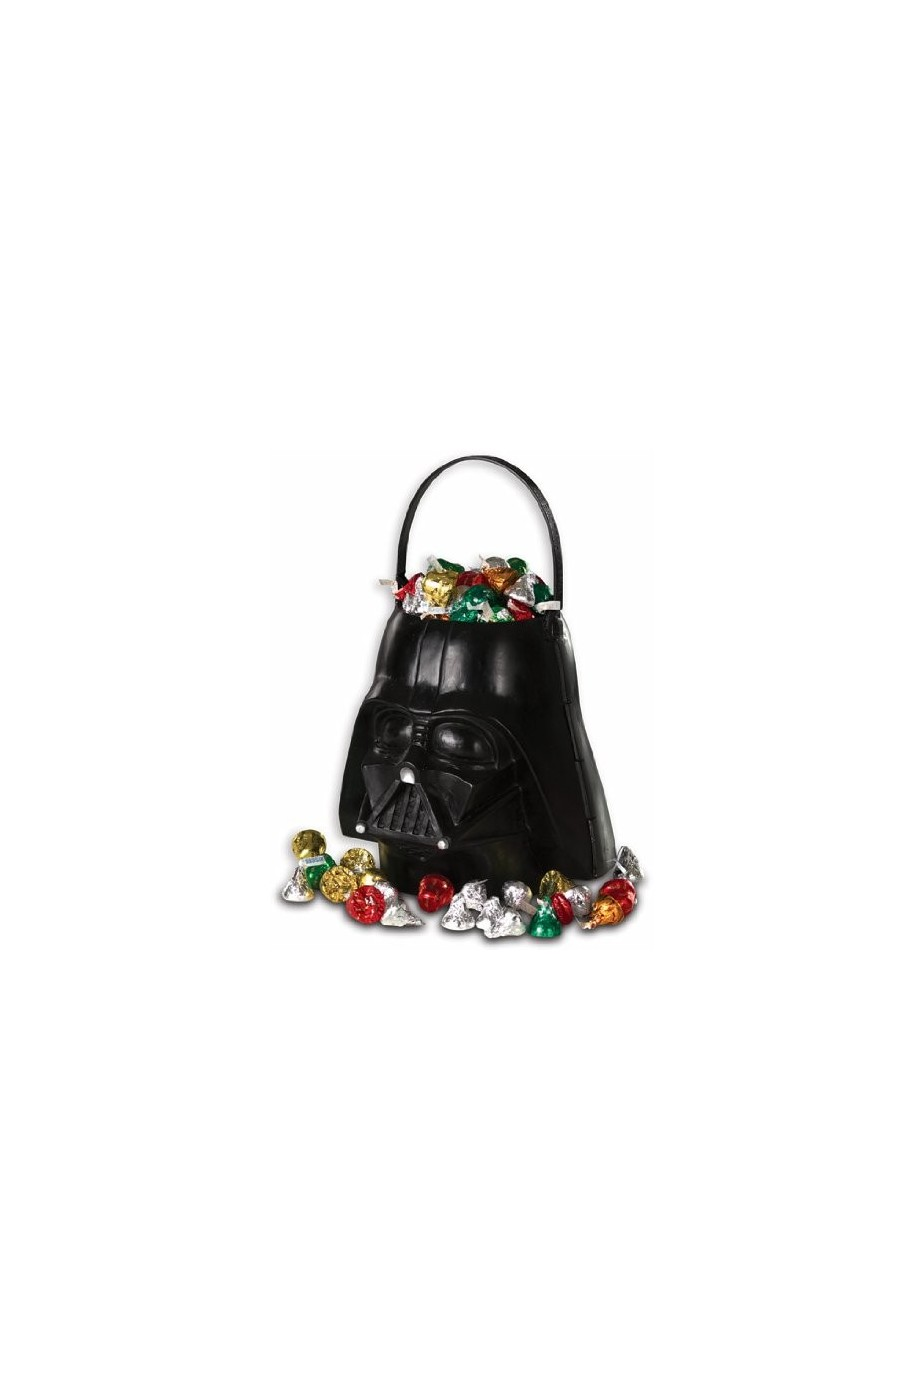 Borsa portadolcetti in plastica Star Wars hDarth Vader alloween